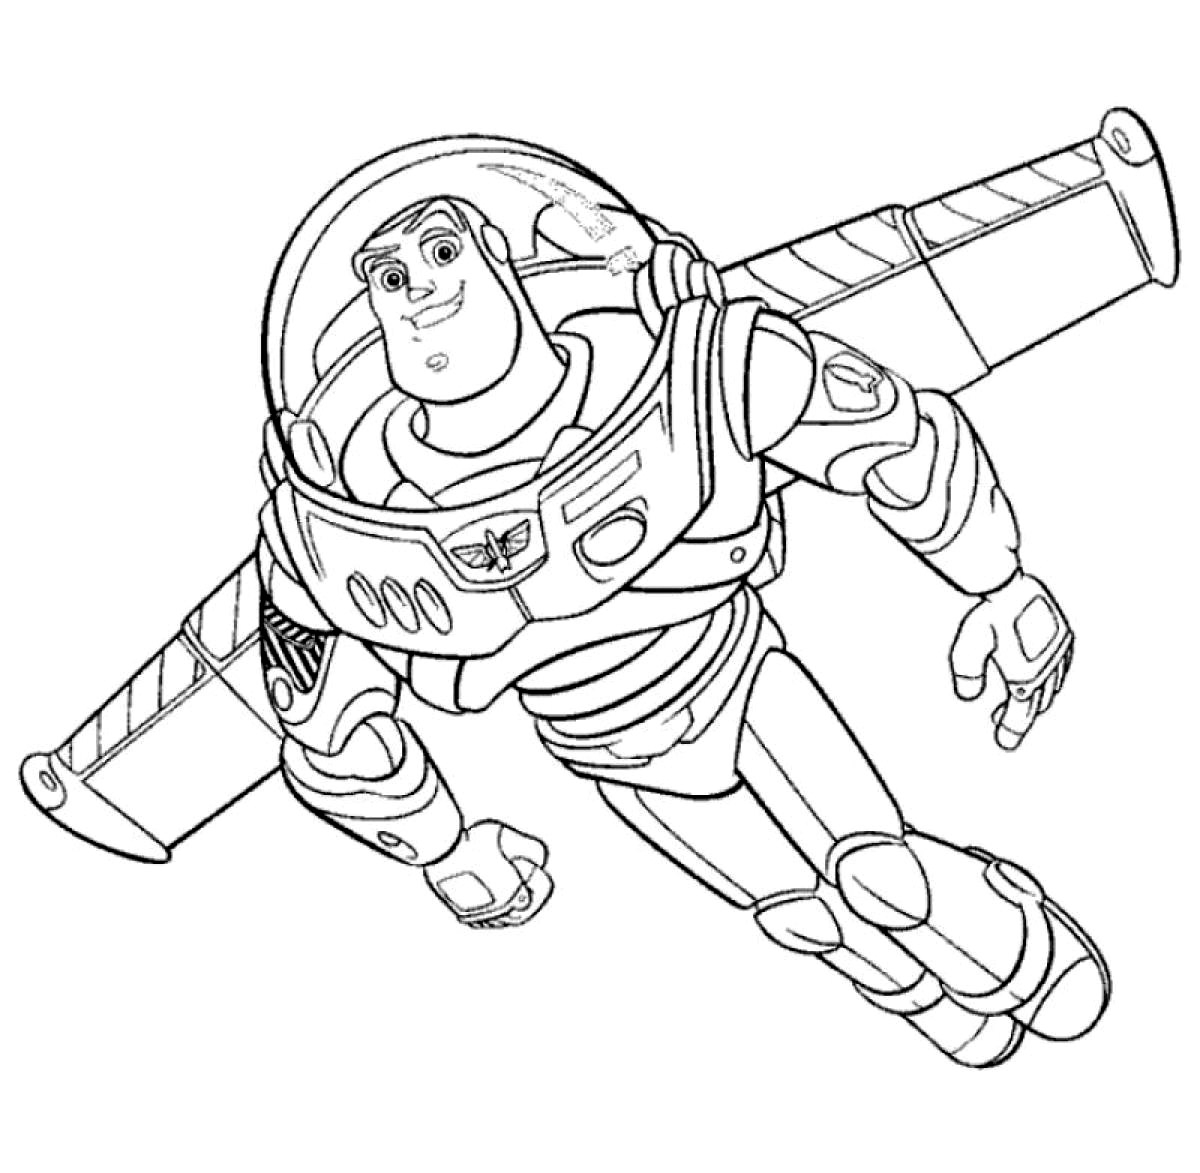 woody coloring pages - printable toy story coloring pages